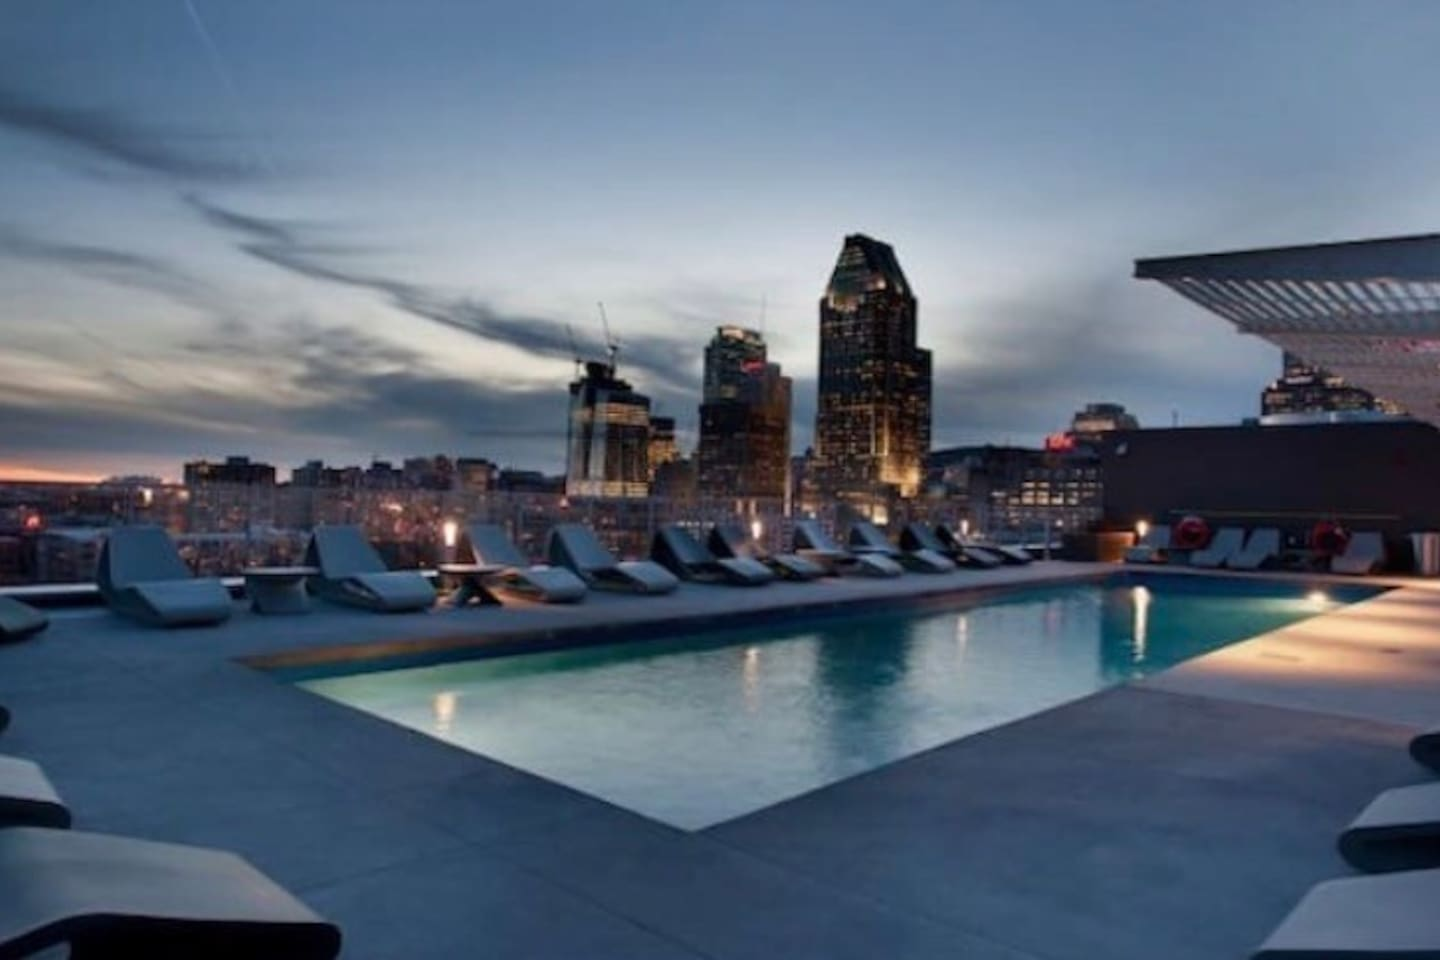 Rooftop pool / piscine sur le toit - vacation spot in the heart of the city.